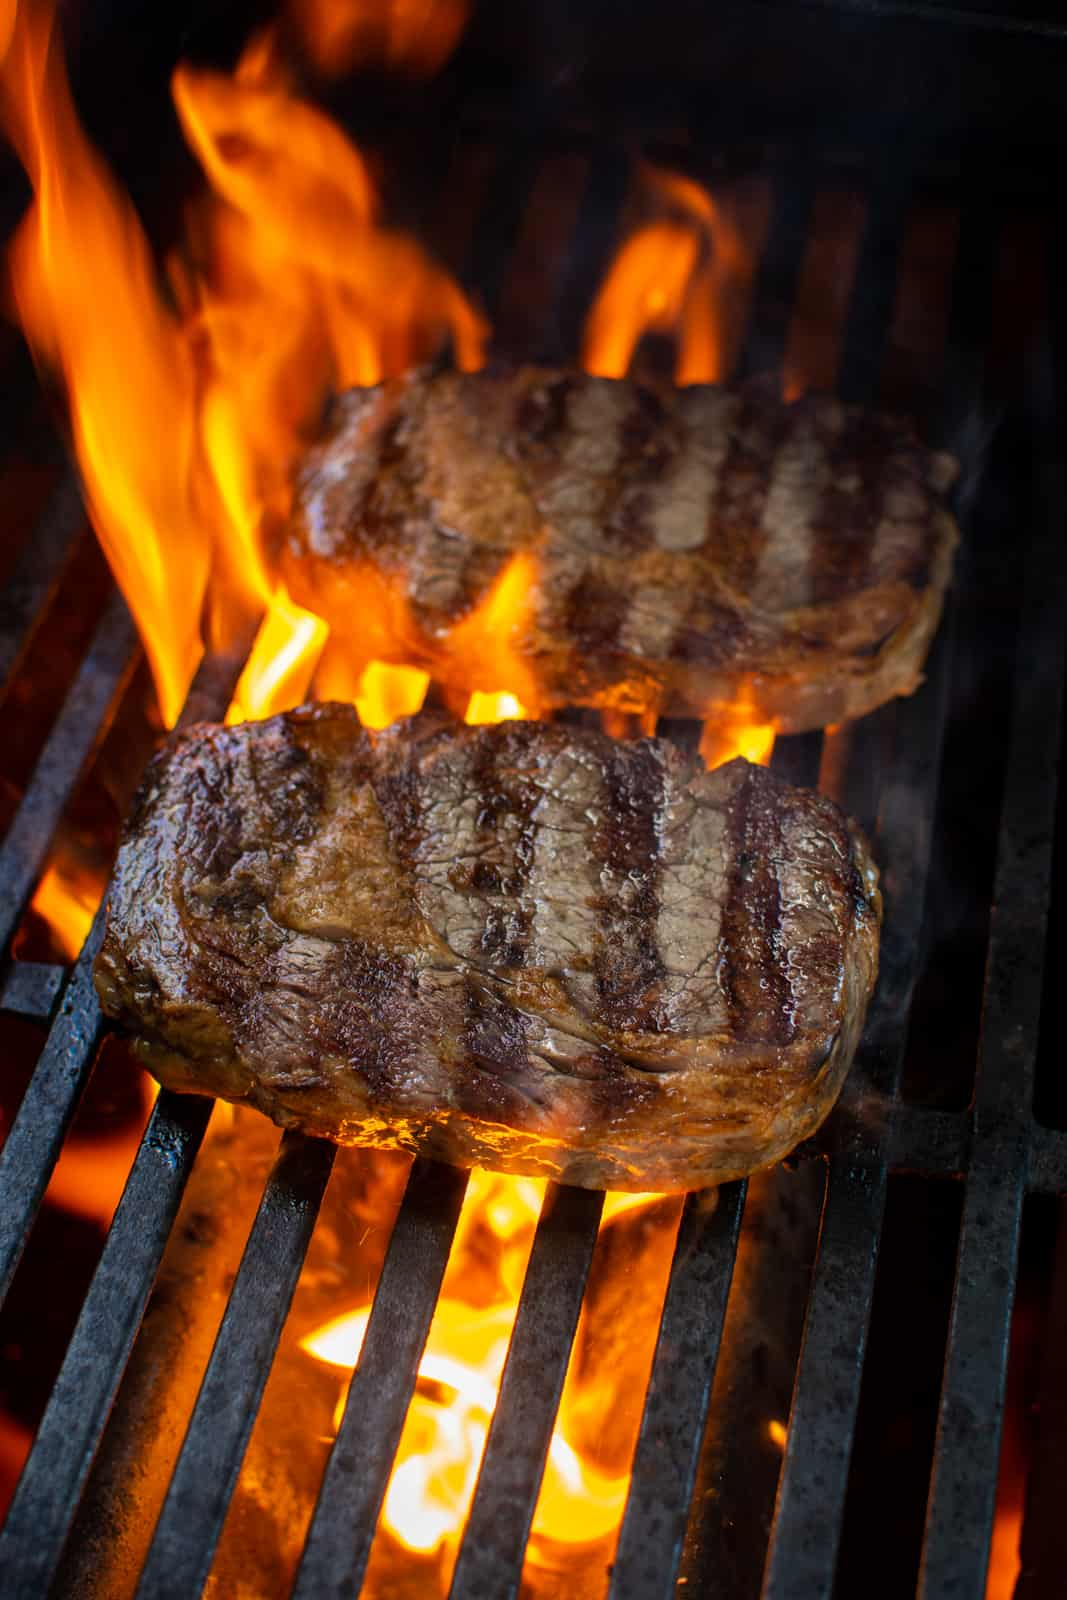 steak being grilled over gas BBQ with flames